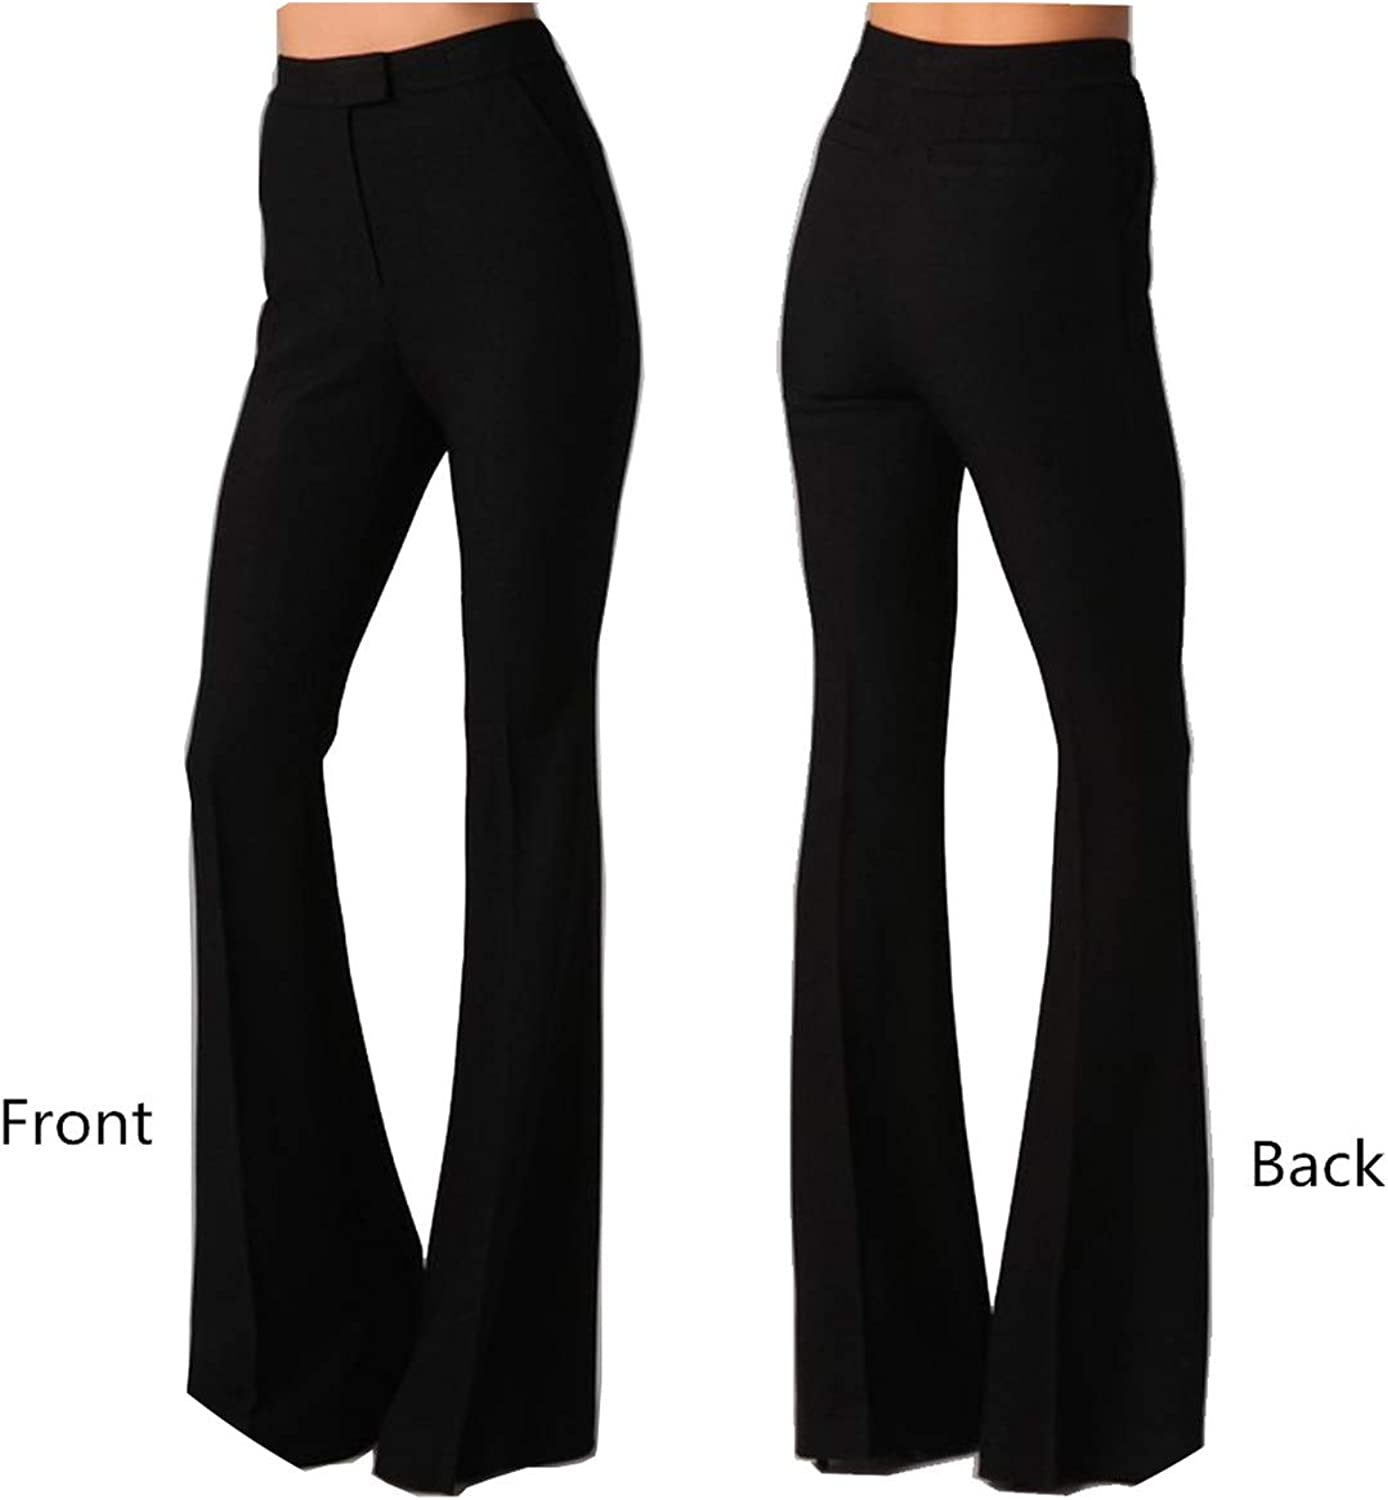 4XL Cotton Black Slim Flare Pants High Waist Long Office Work Pants Wide Leg Thin Trousers